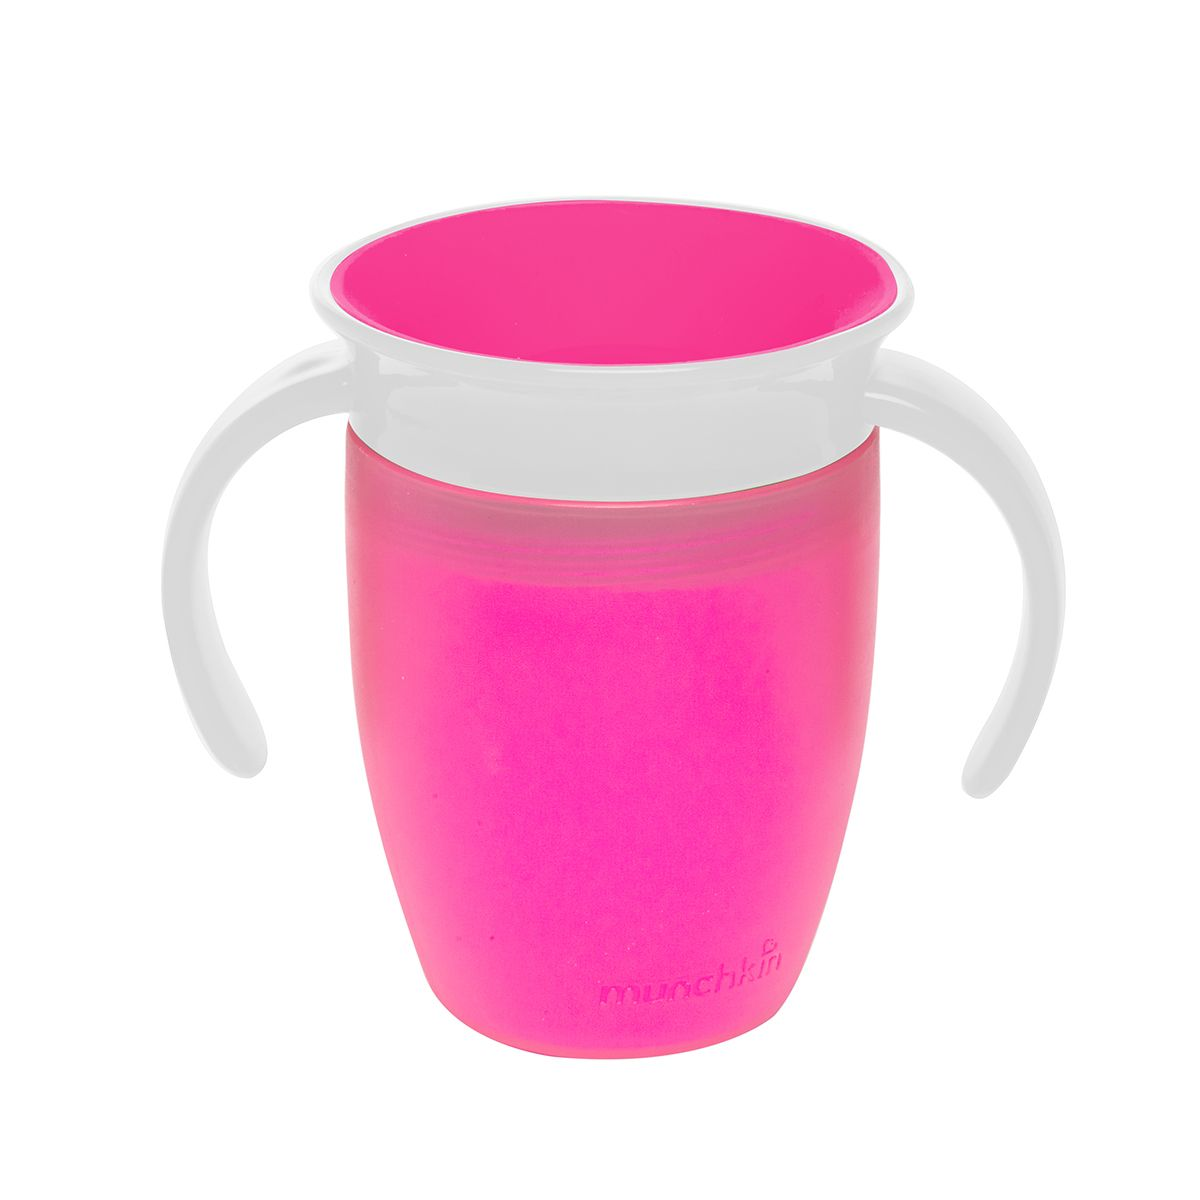 Miracles Do Happen Drink Naturally From Anywhere On The 360 Rim Without Worrying About Spills The Lid Automa Toddler Cup Toddler Sippy Cups Munchkin Bottles